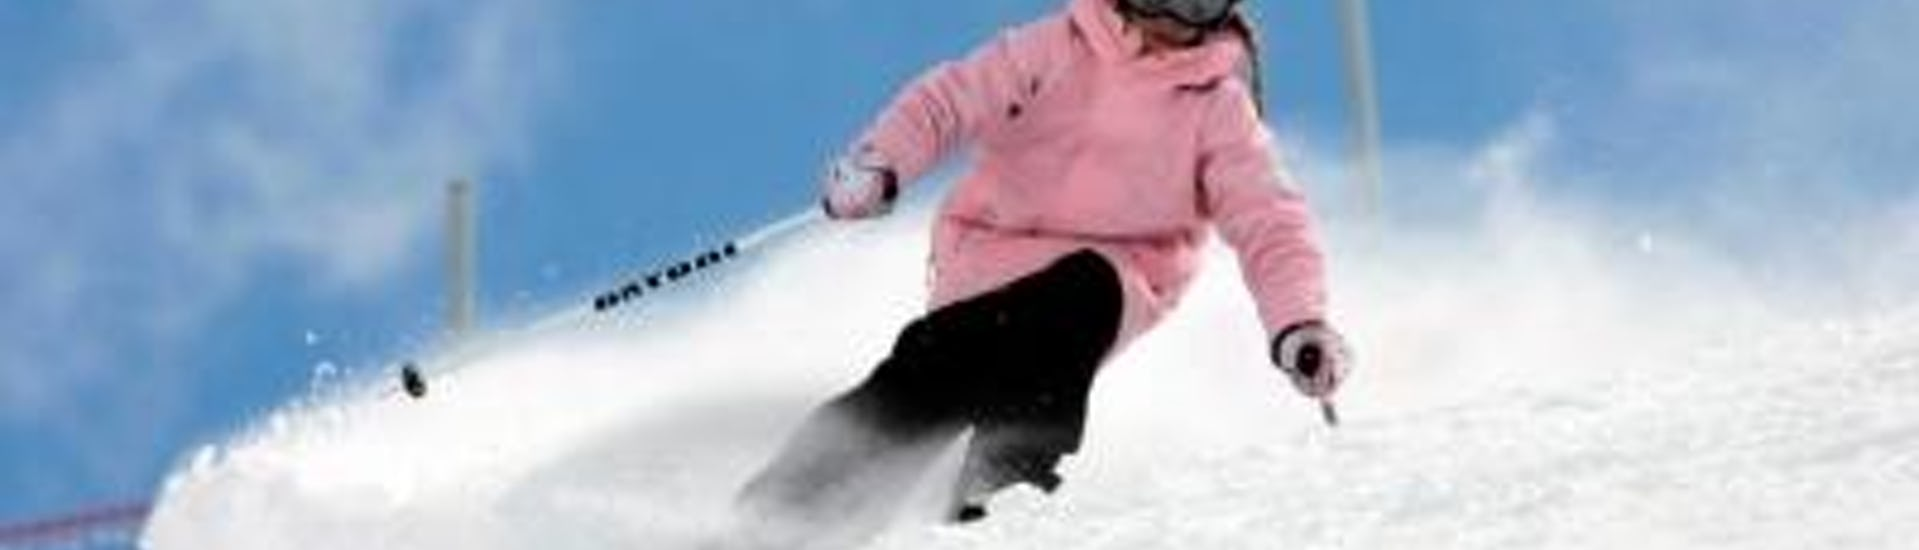 "Ski Lessons ""Full Day"" for Kids (4-14 years) - All Levels"